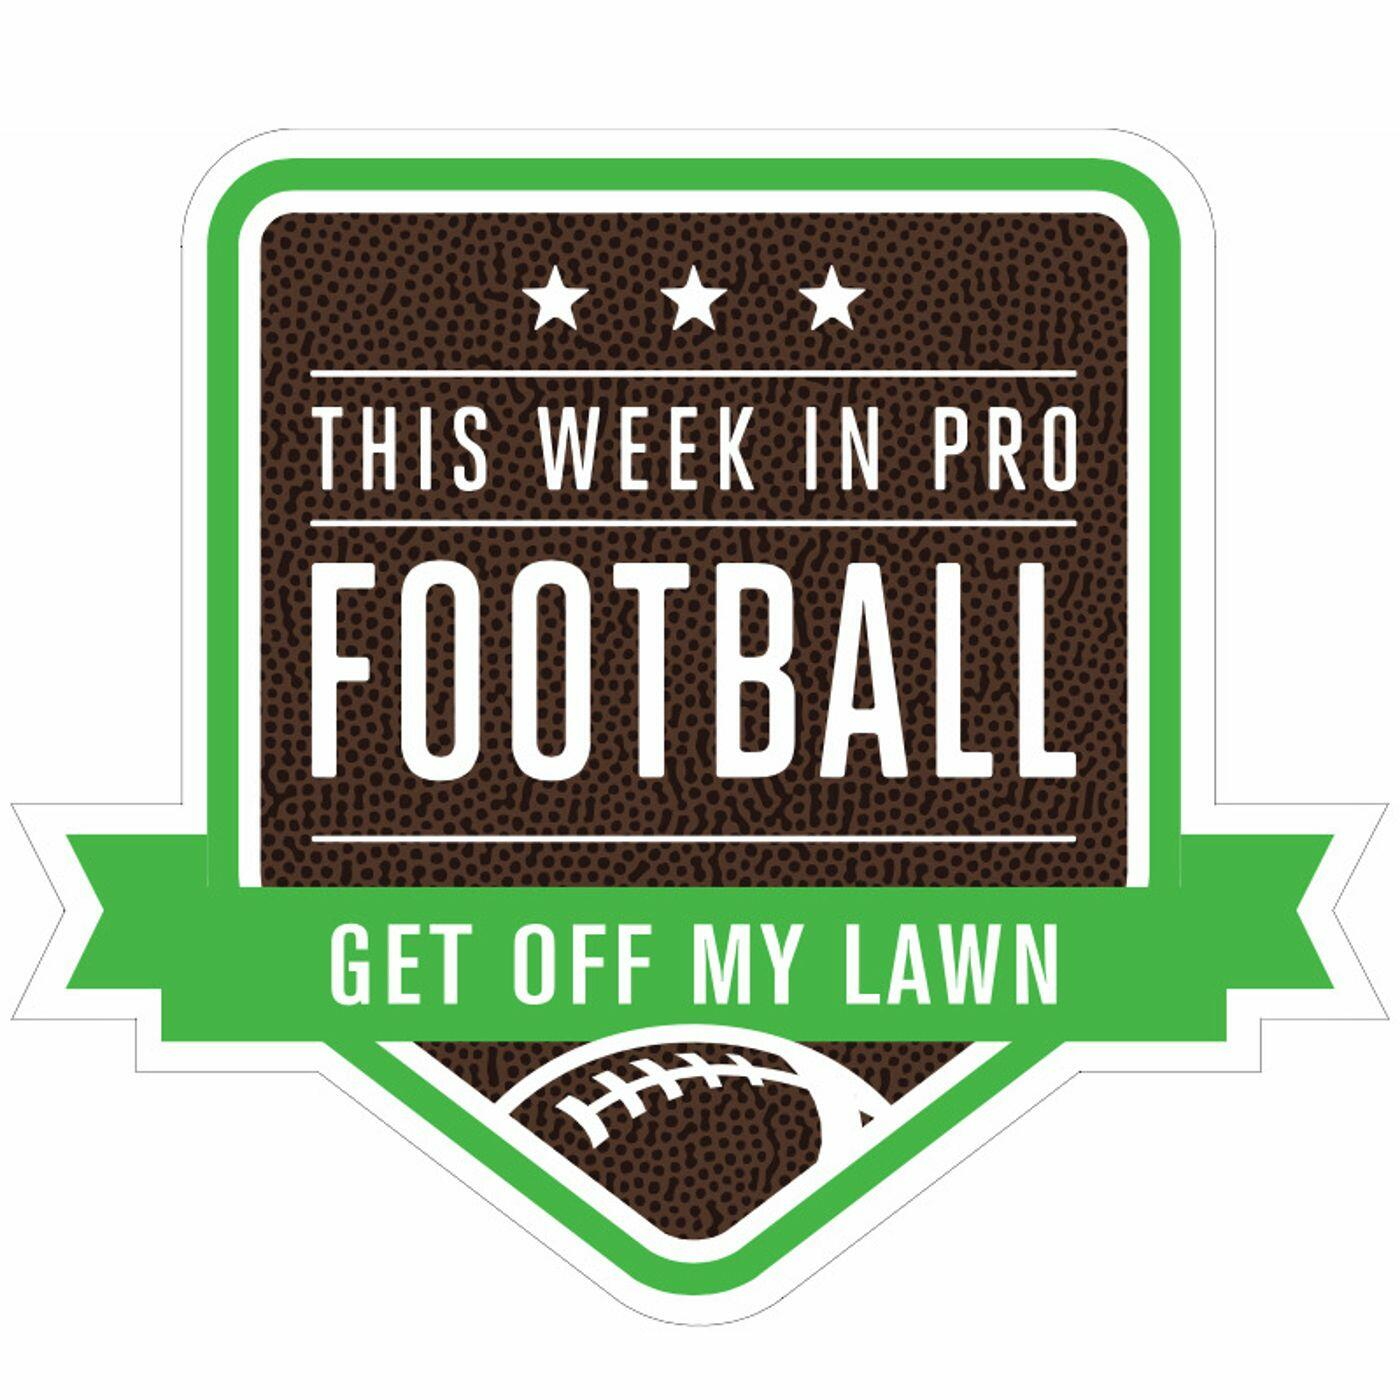 This Week In Pro Football